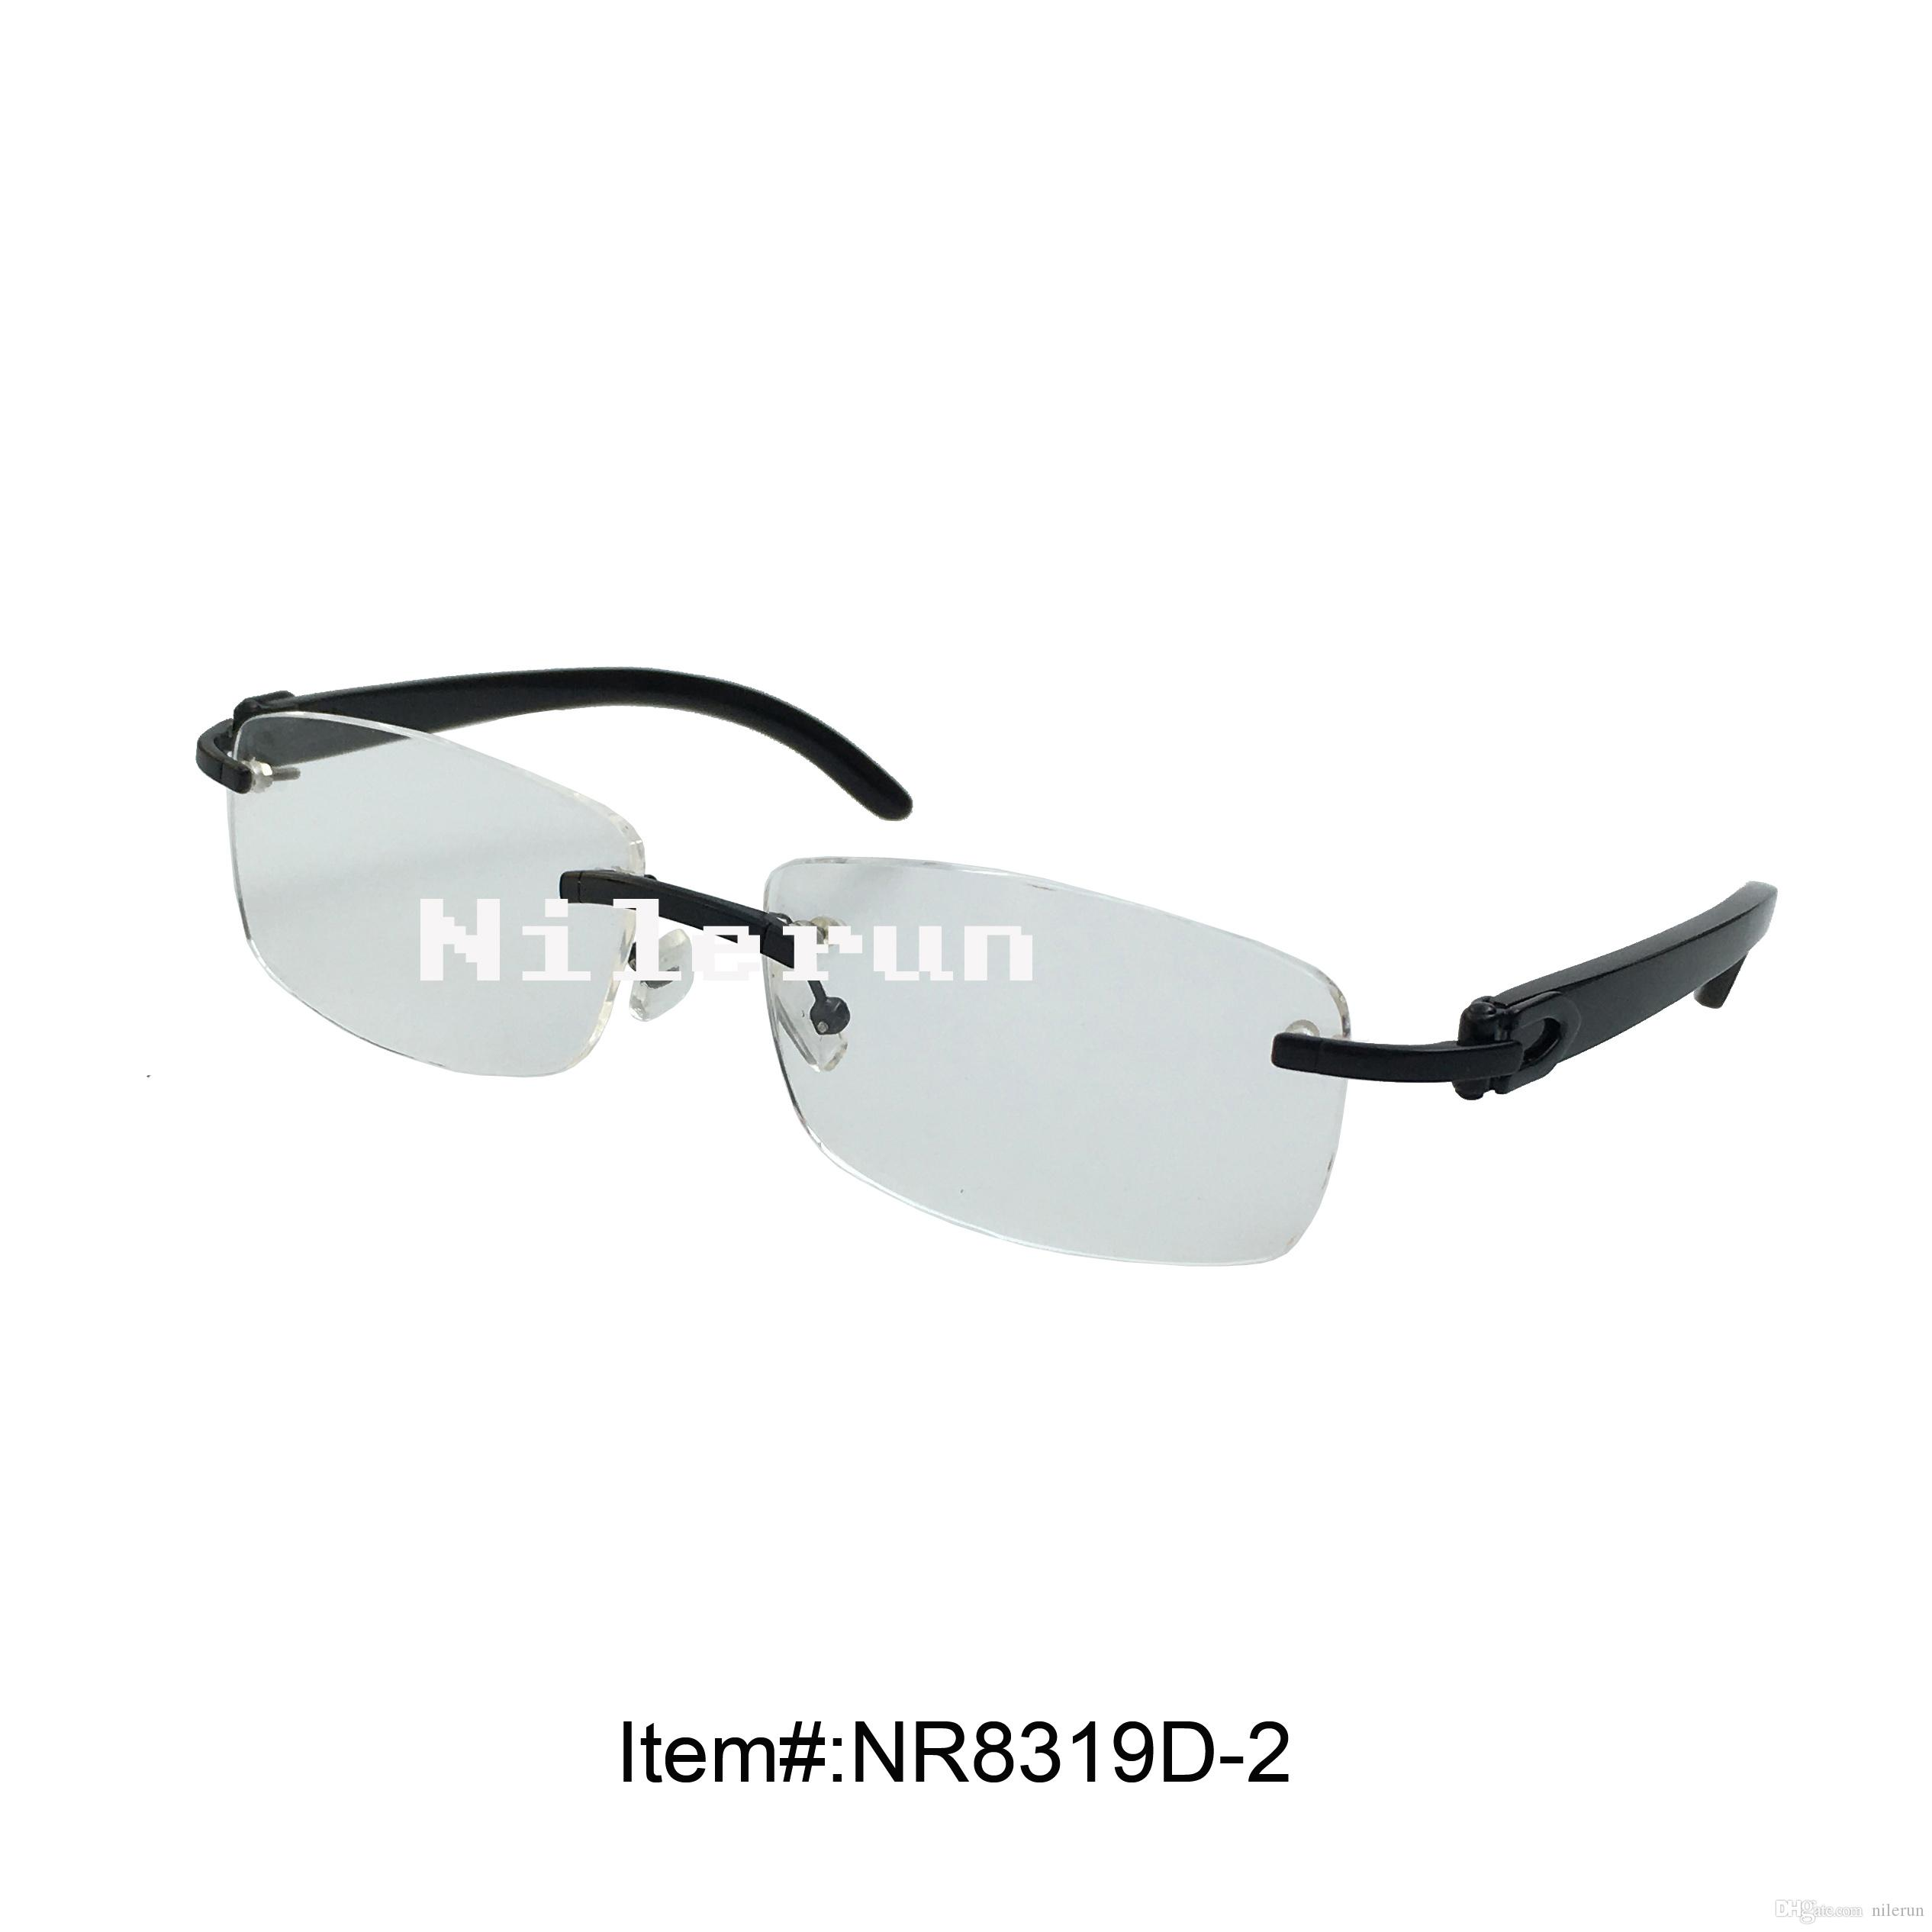 b49b5c5a06ec Hot Sale Rimless Optical Reading Glasses with Buffalo Horn Temples Hot Selling  Glasses Rimless Eyeglasses Rimless Reading Glasses Online with  57.95 Piece  ...